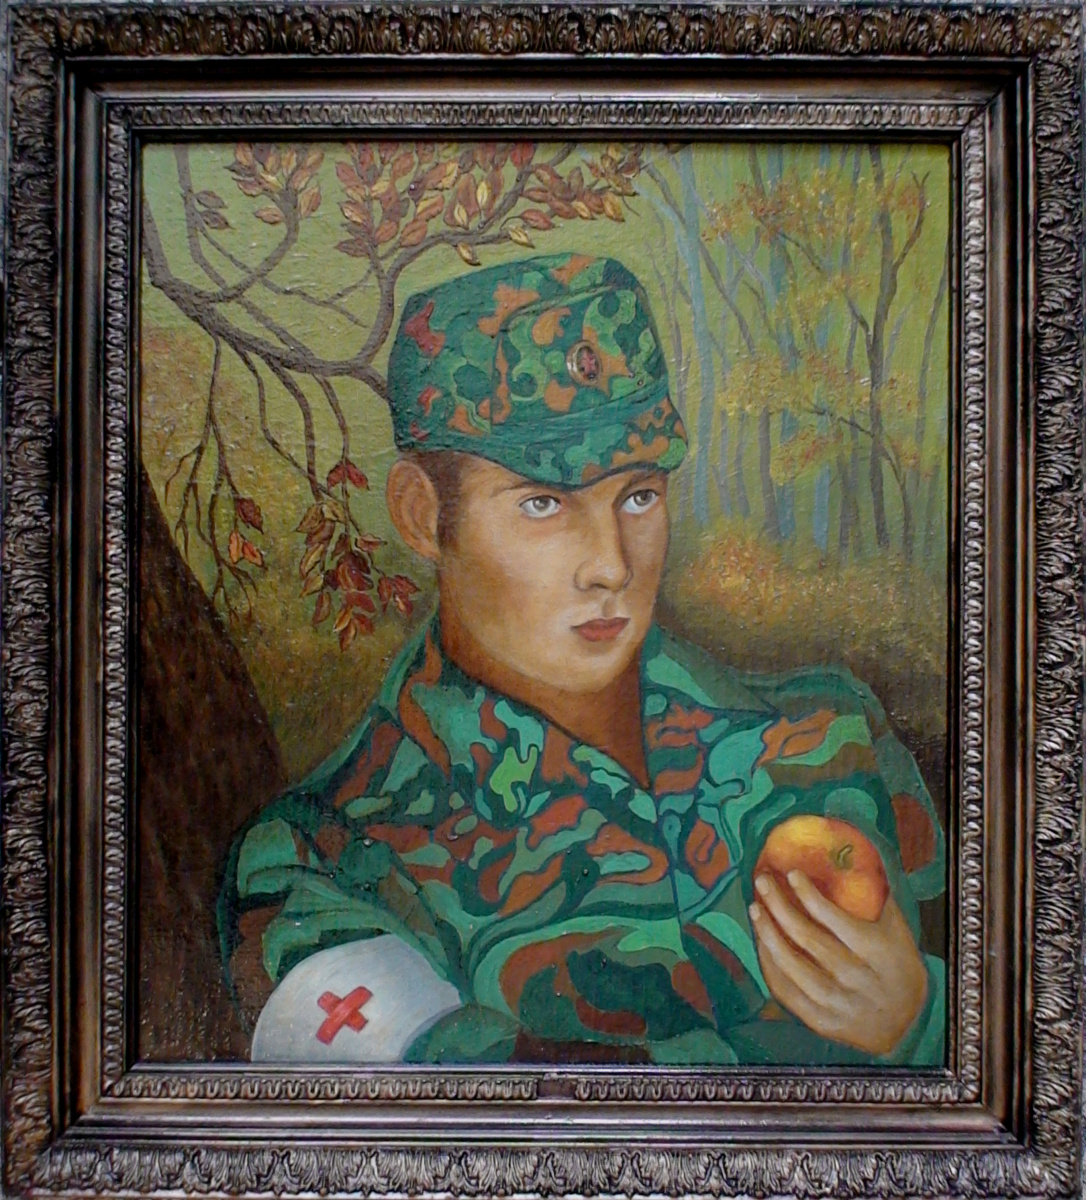 Vladimir Pavlovich Parkin. Portrait of a son. Pavel Parkin is a military orderly of the Border Troops.